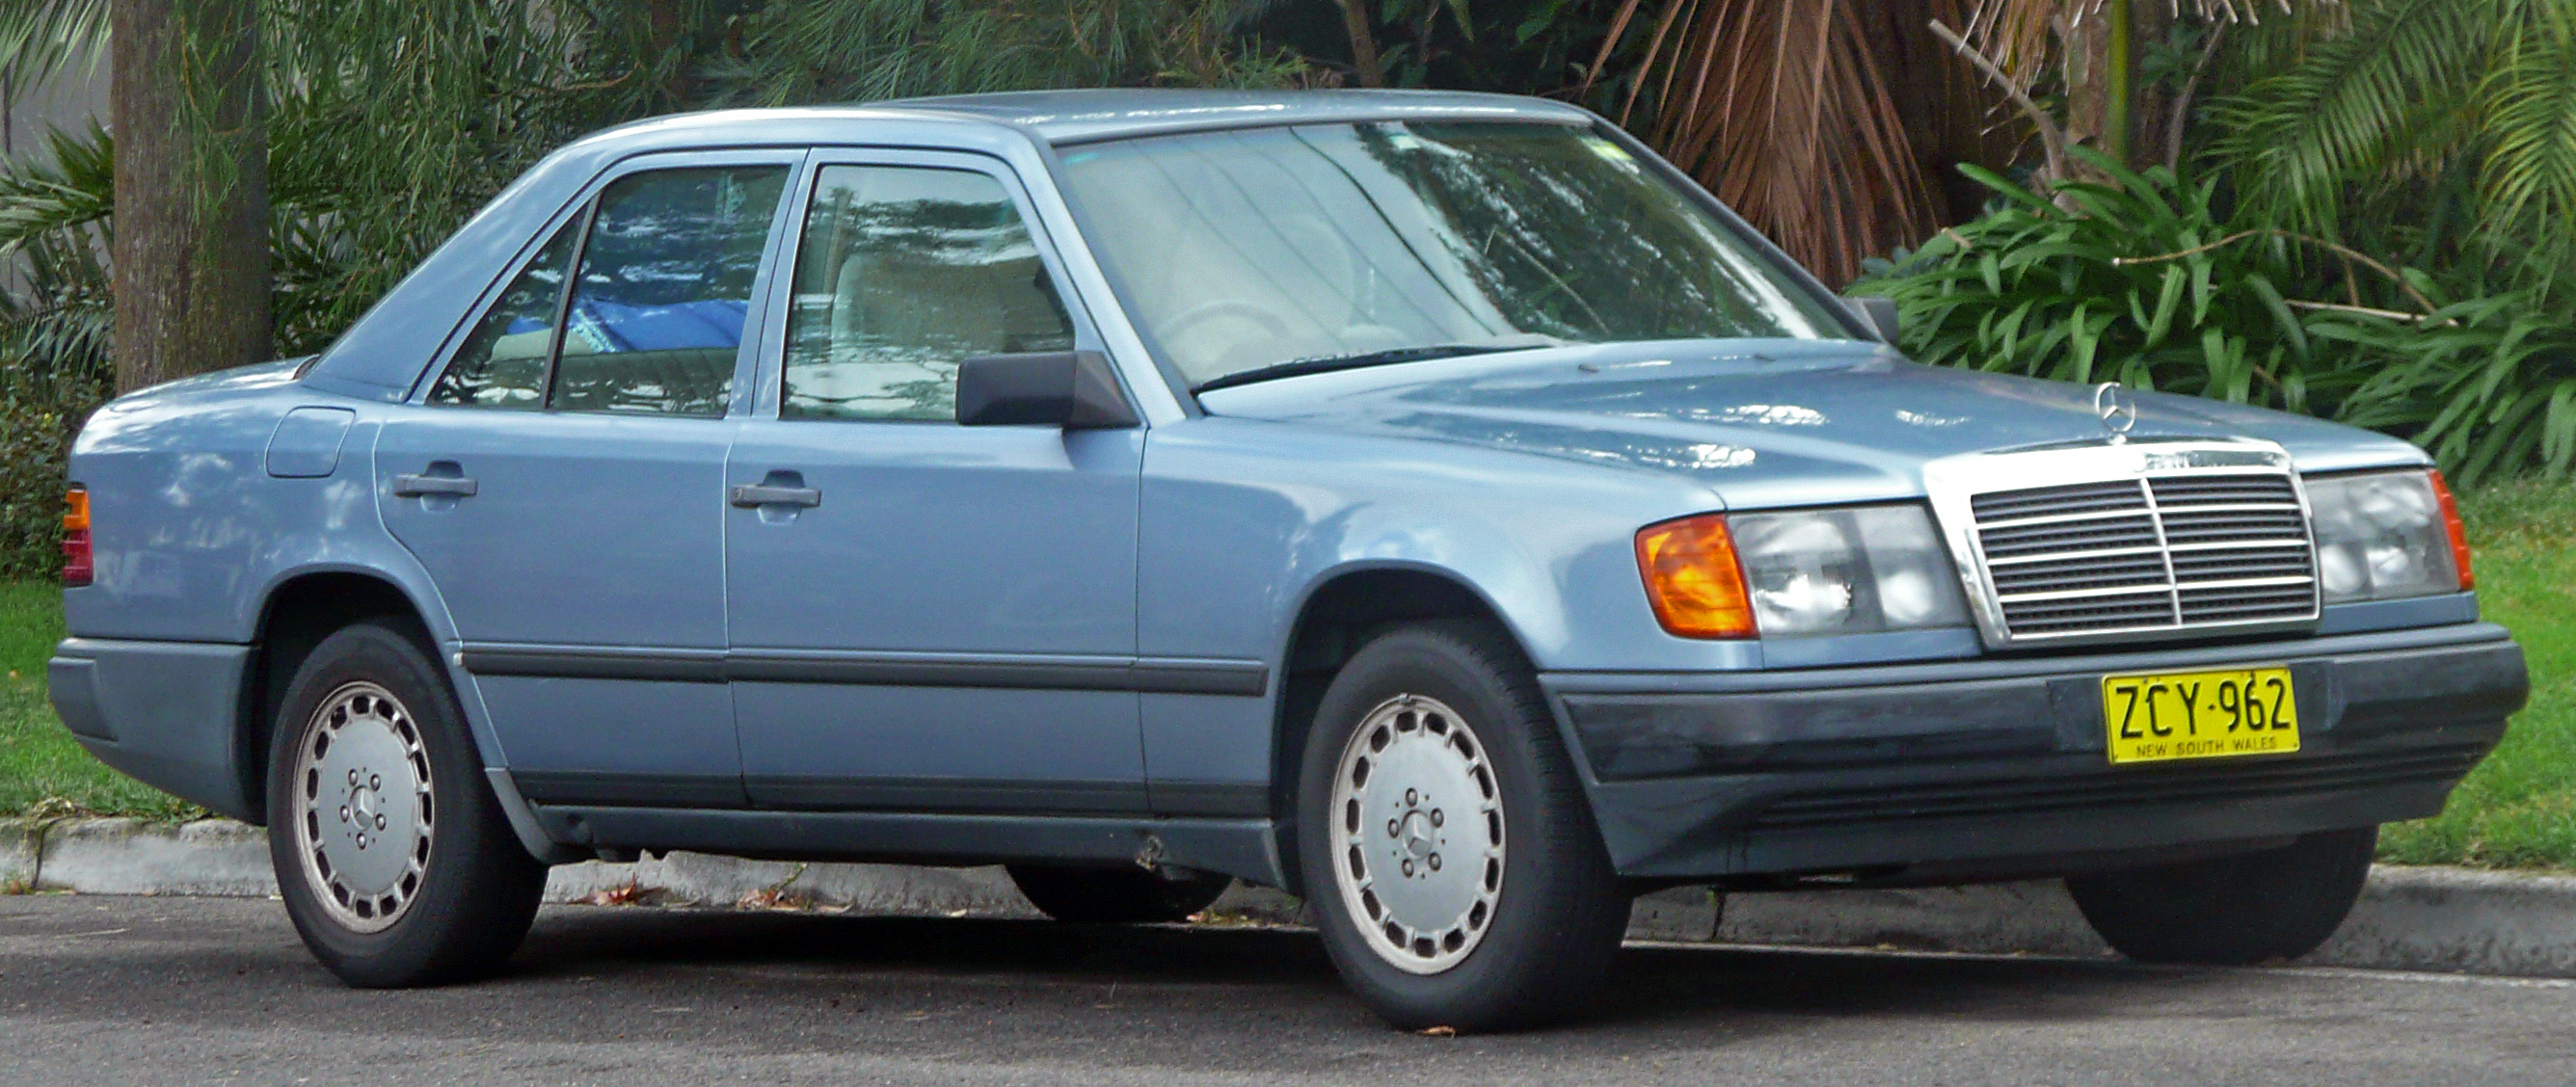 mercedes w124 t-model 1990 images